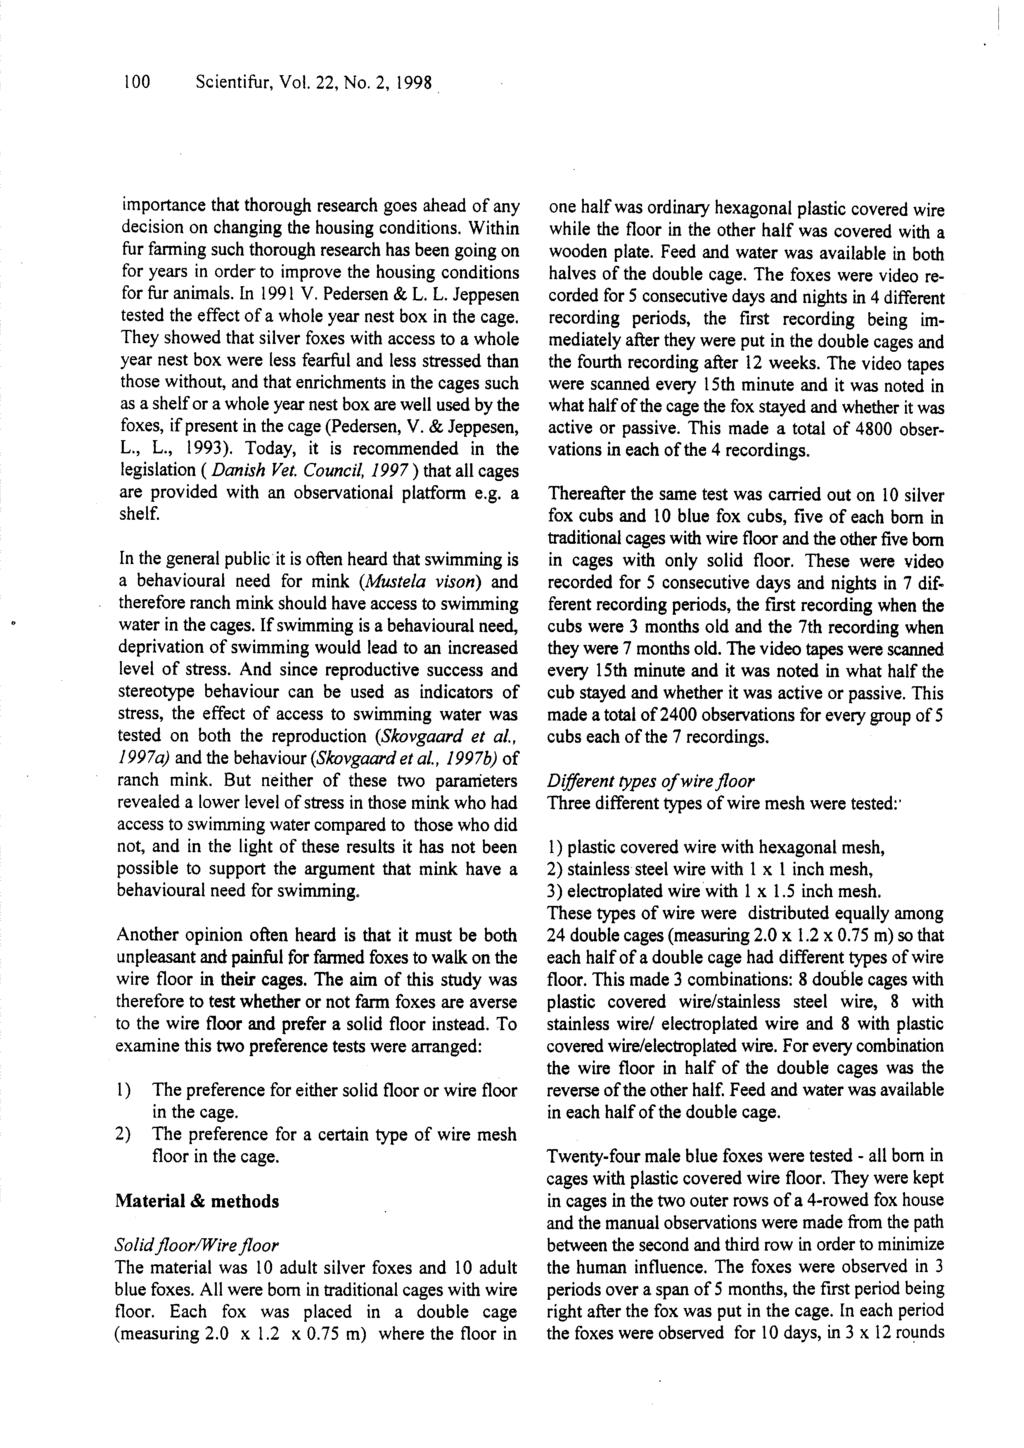 1 O0 Scientifur, Vol. 22, No. 2, 1998 importance that thorough research goes ahead of any decision on changing the housing conditions.